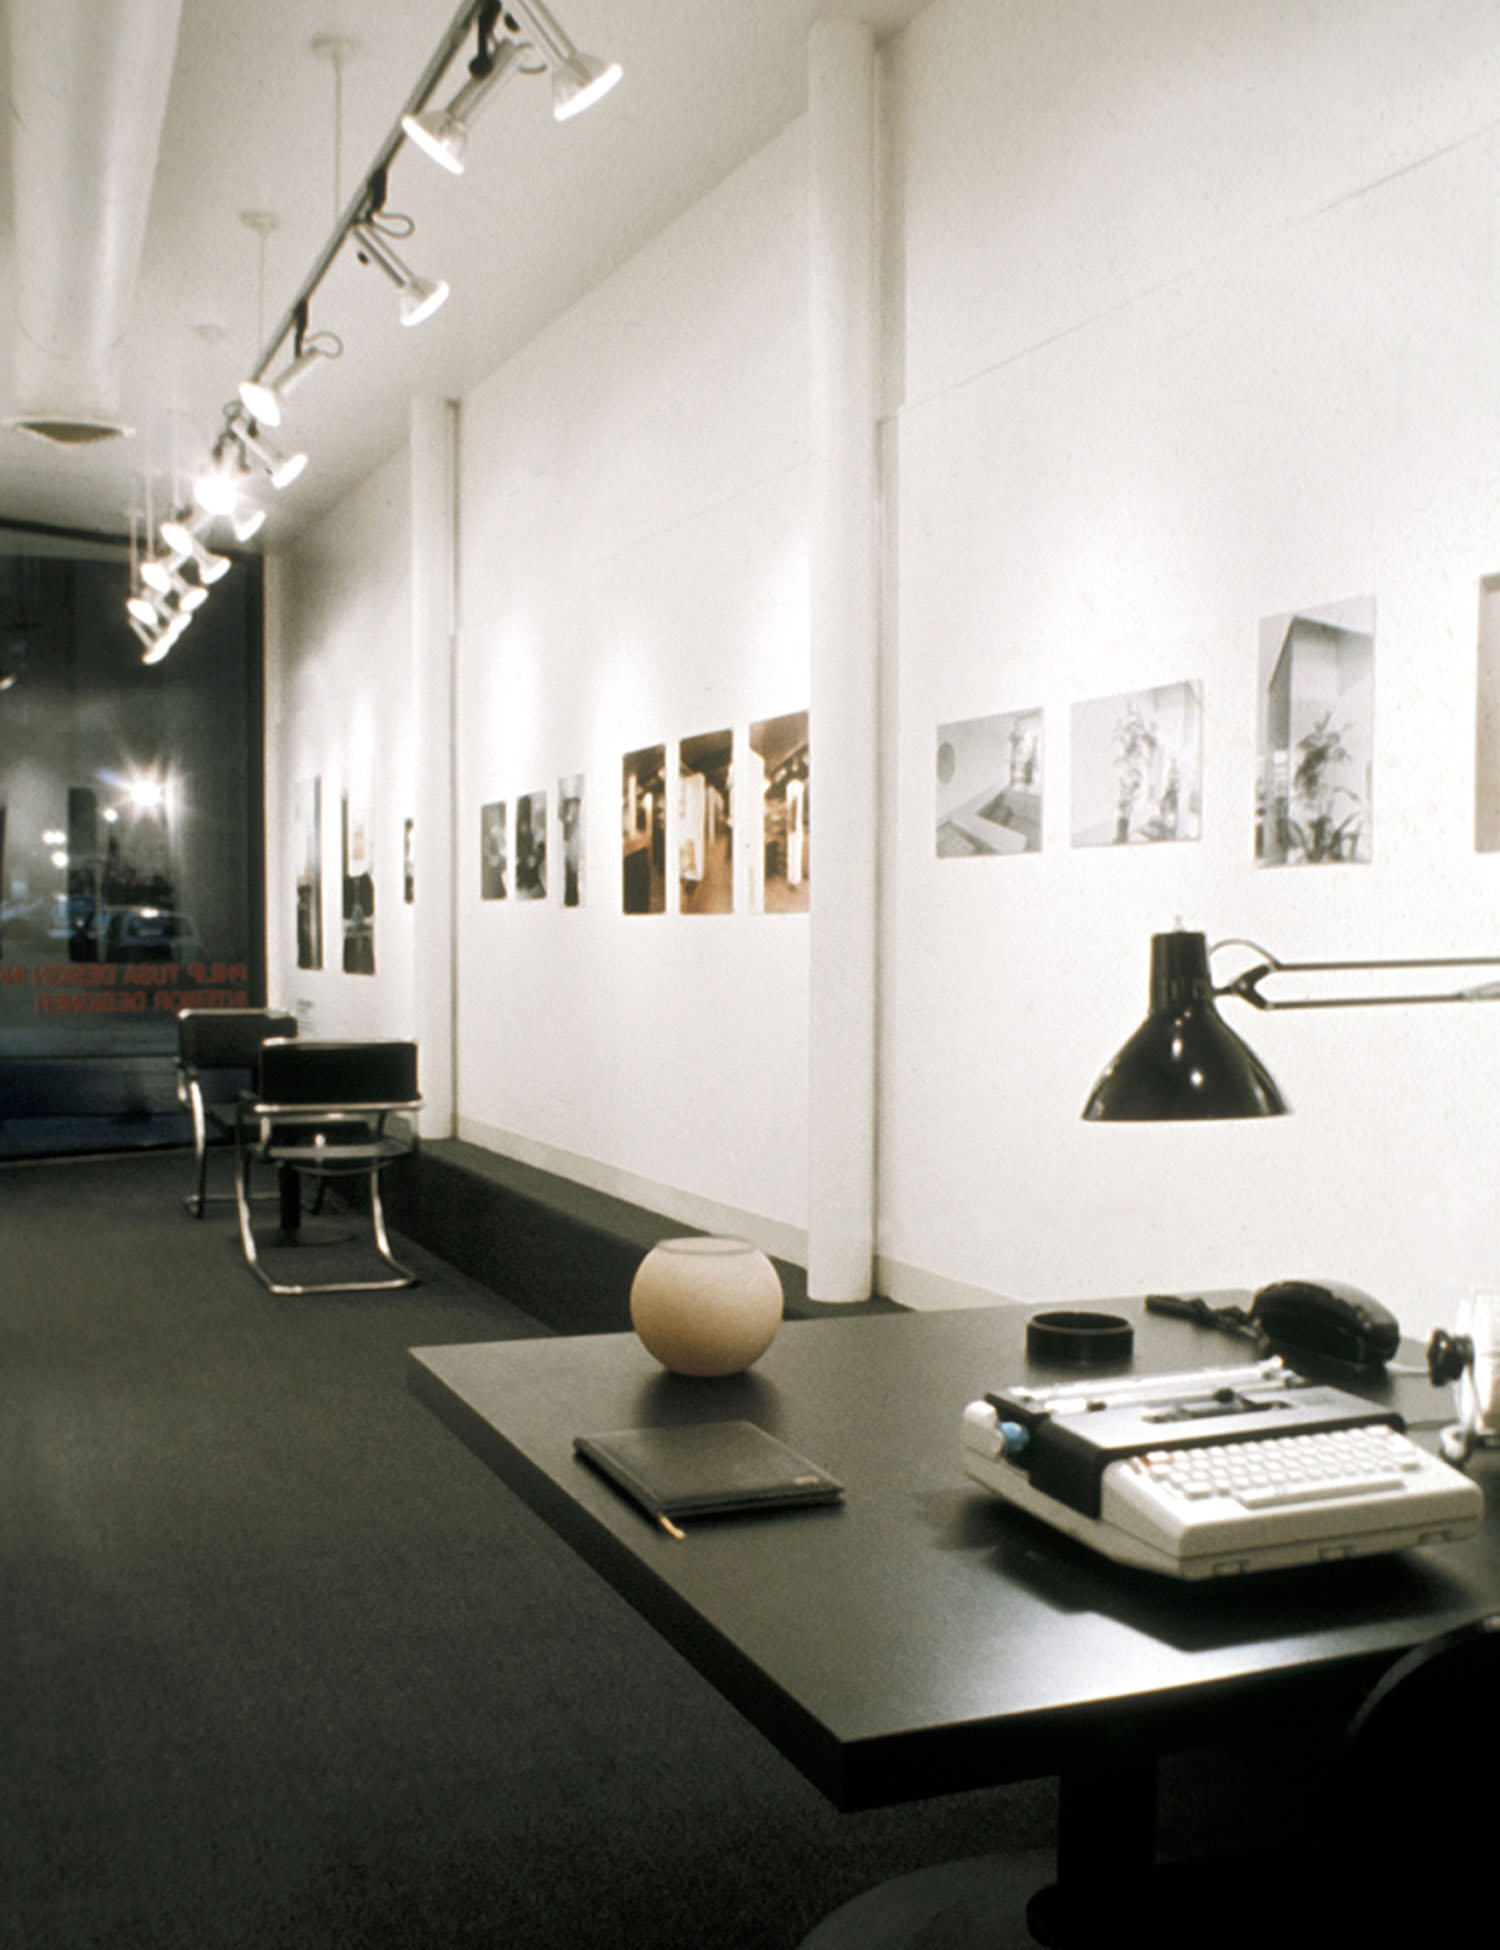 316 East 53rd Street Studio View 4; Photo: Bill Kontzias